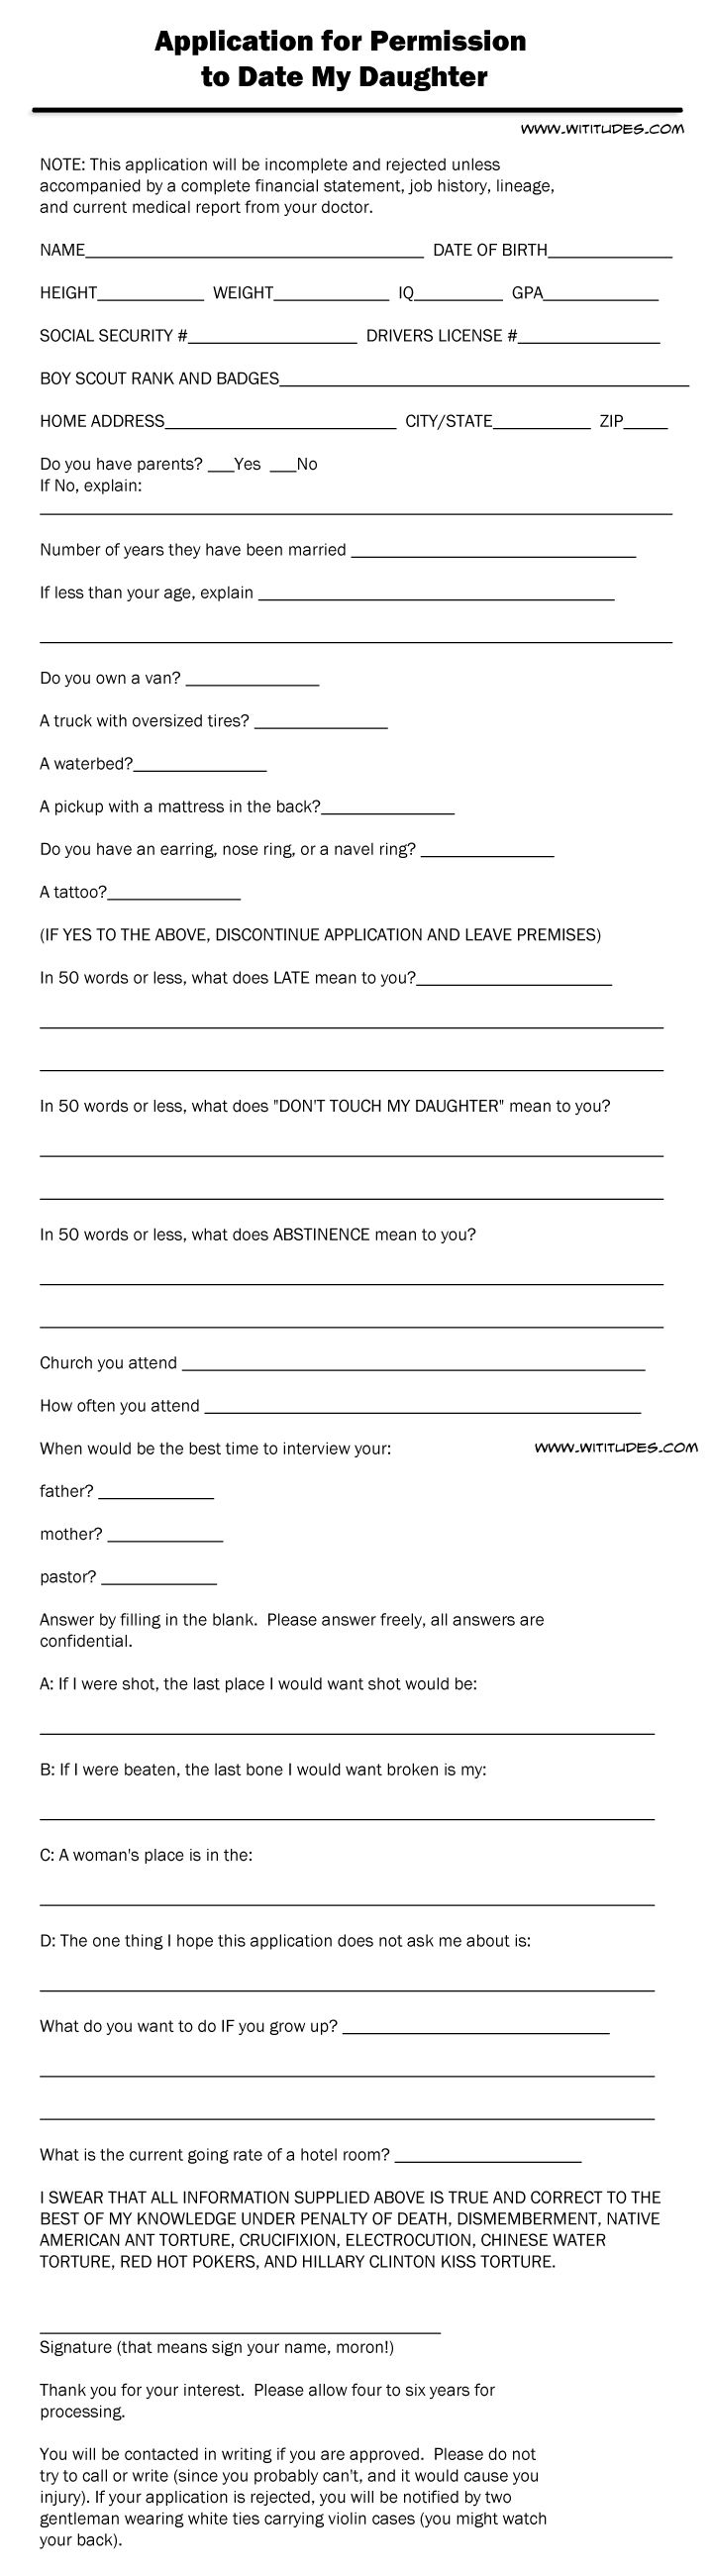 Application for dating my daughter